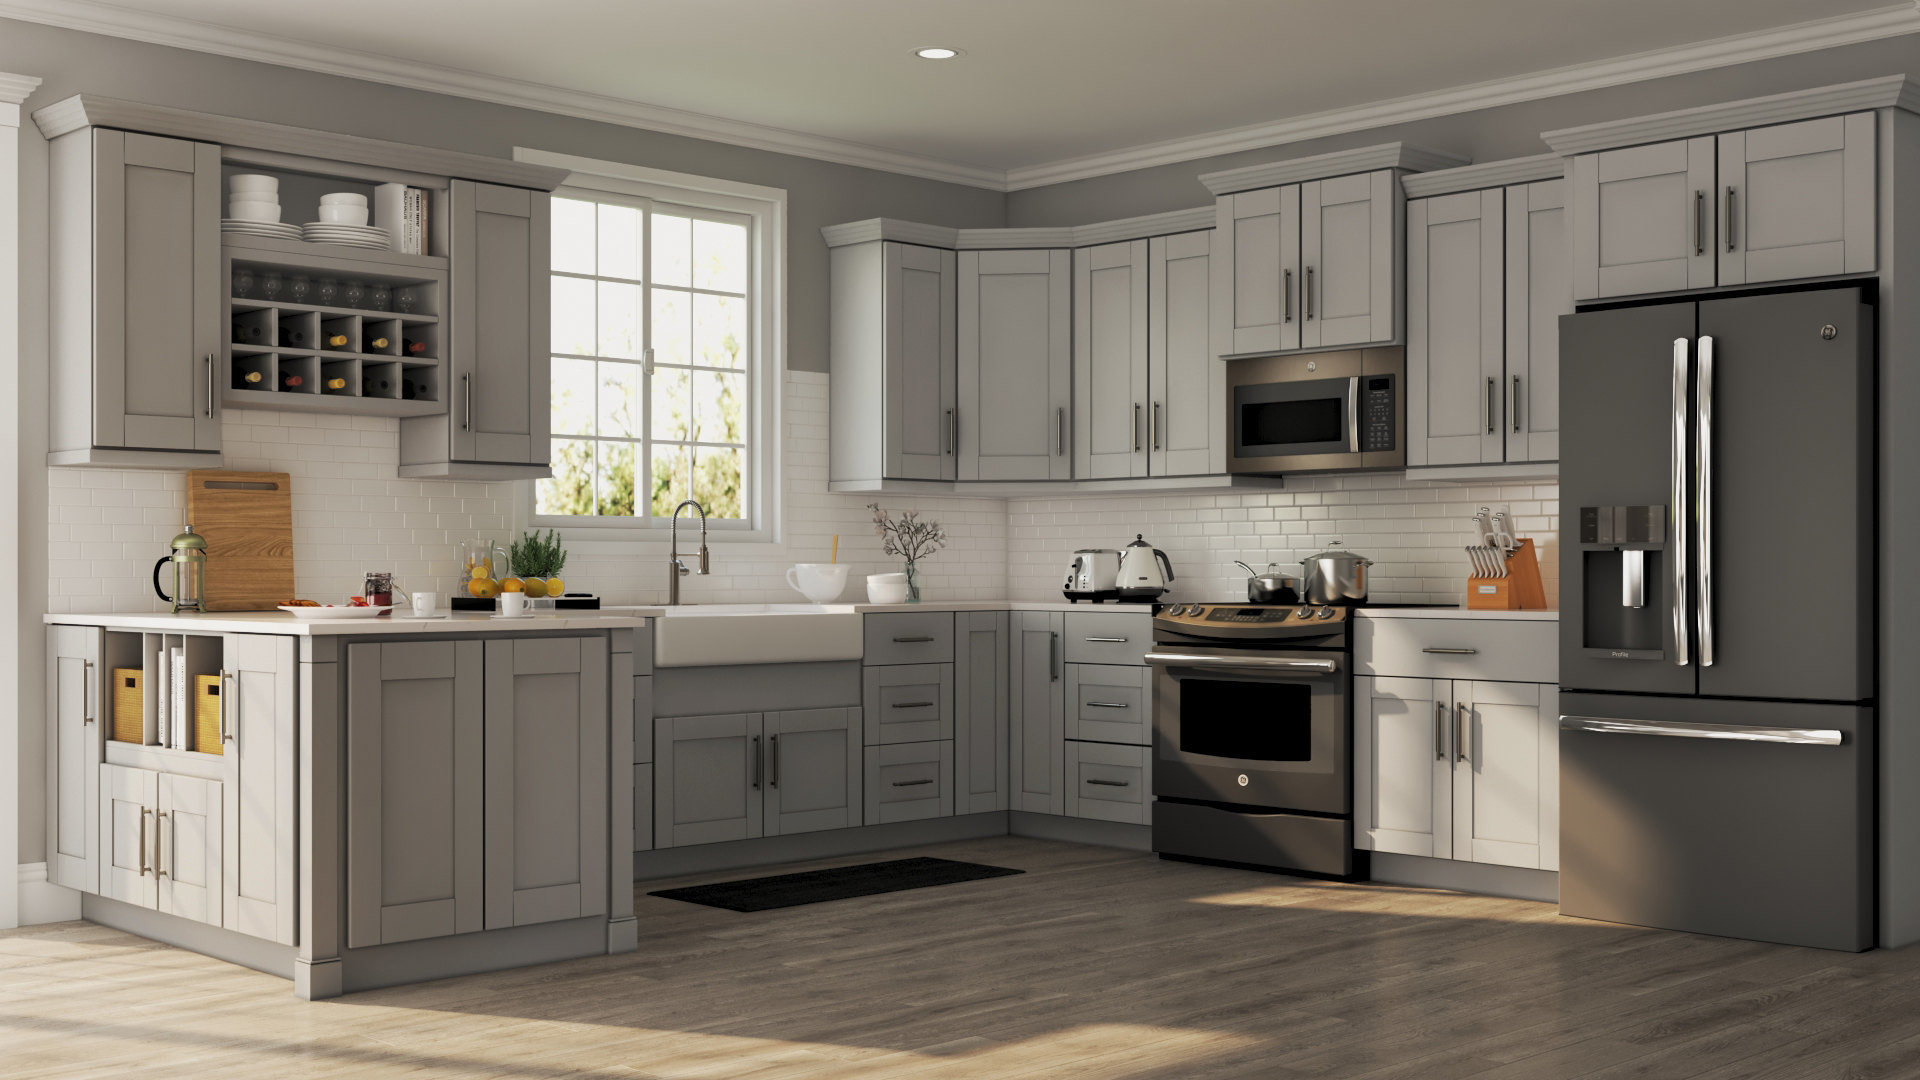 Grey Kitchen Cabinets What Colour Walls Shaker Wall Cabinets In Dove Gray Kitchen The Home Depot